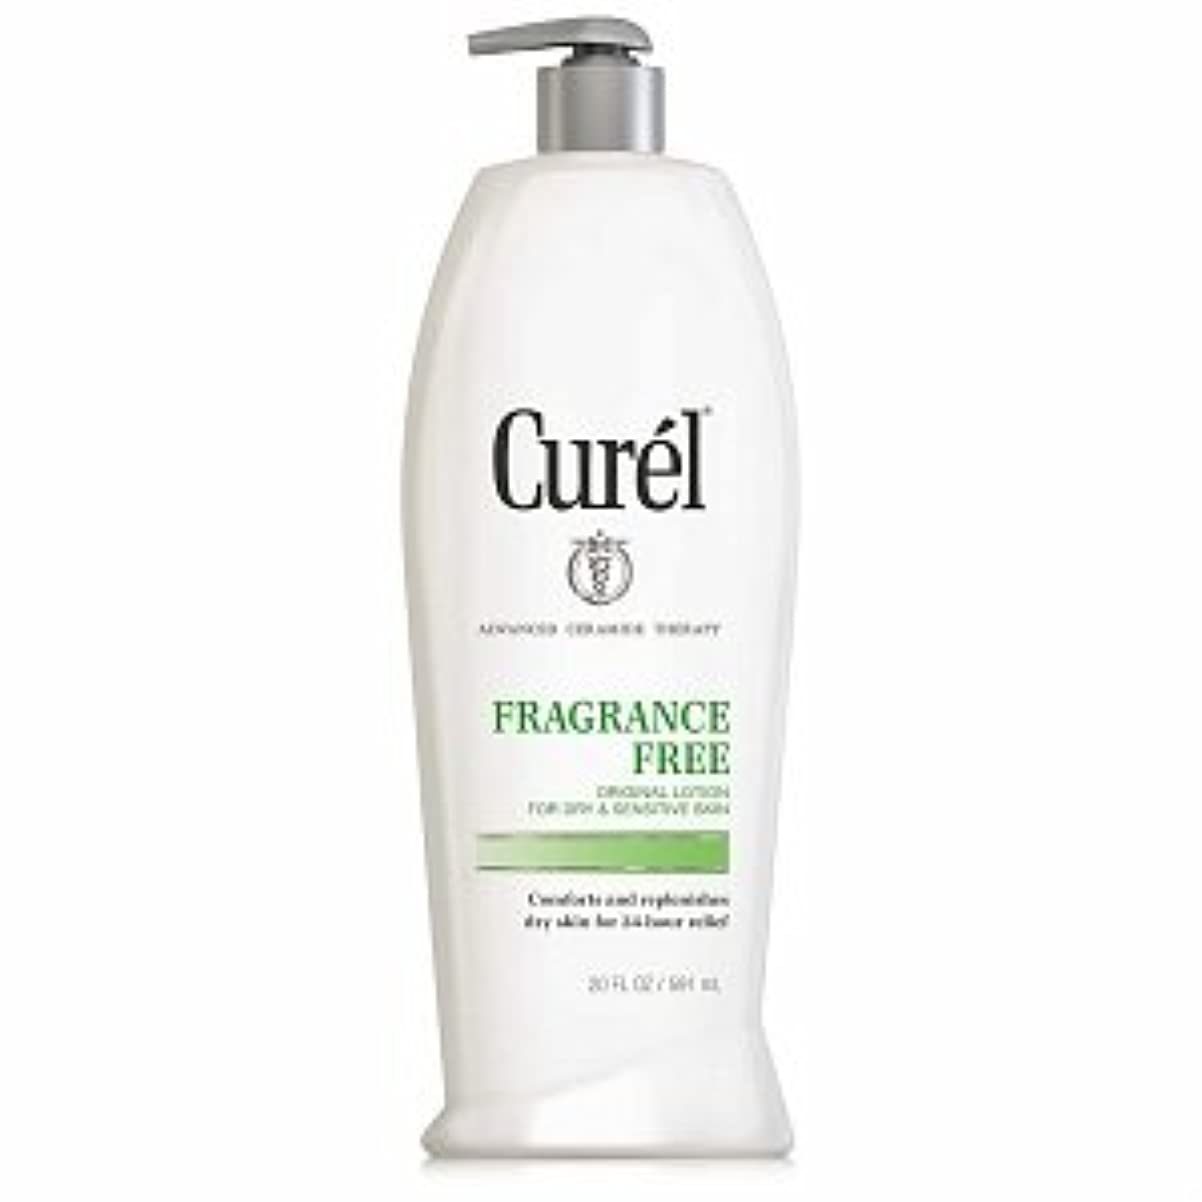 の頭の上レンダリング時間Curel Fragrance Free Original Lotion For Dry&Sensitive Skin - 13 fl oz ポンプ式